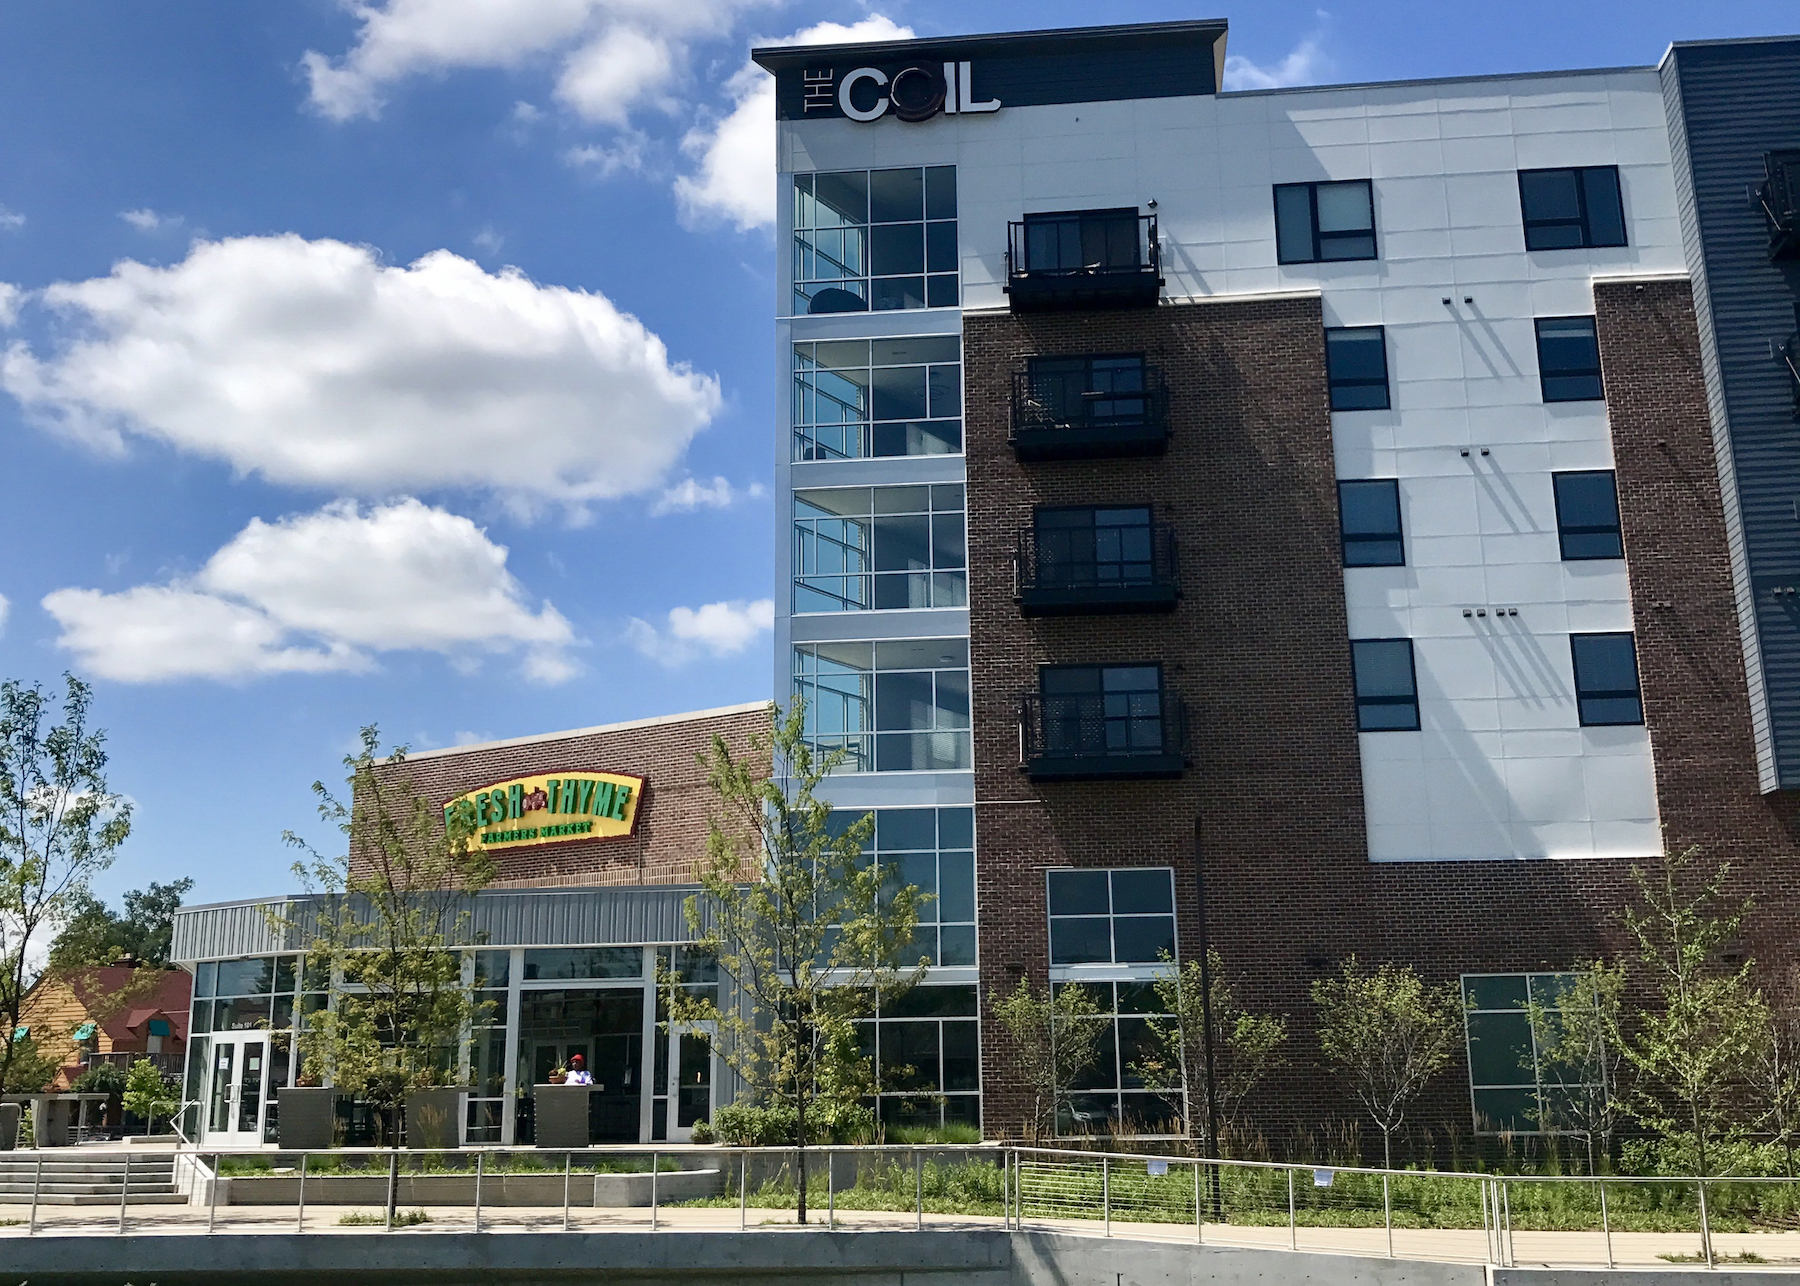 coil-apartment-complex-broad-ripple-indianapolis